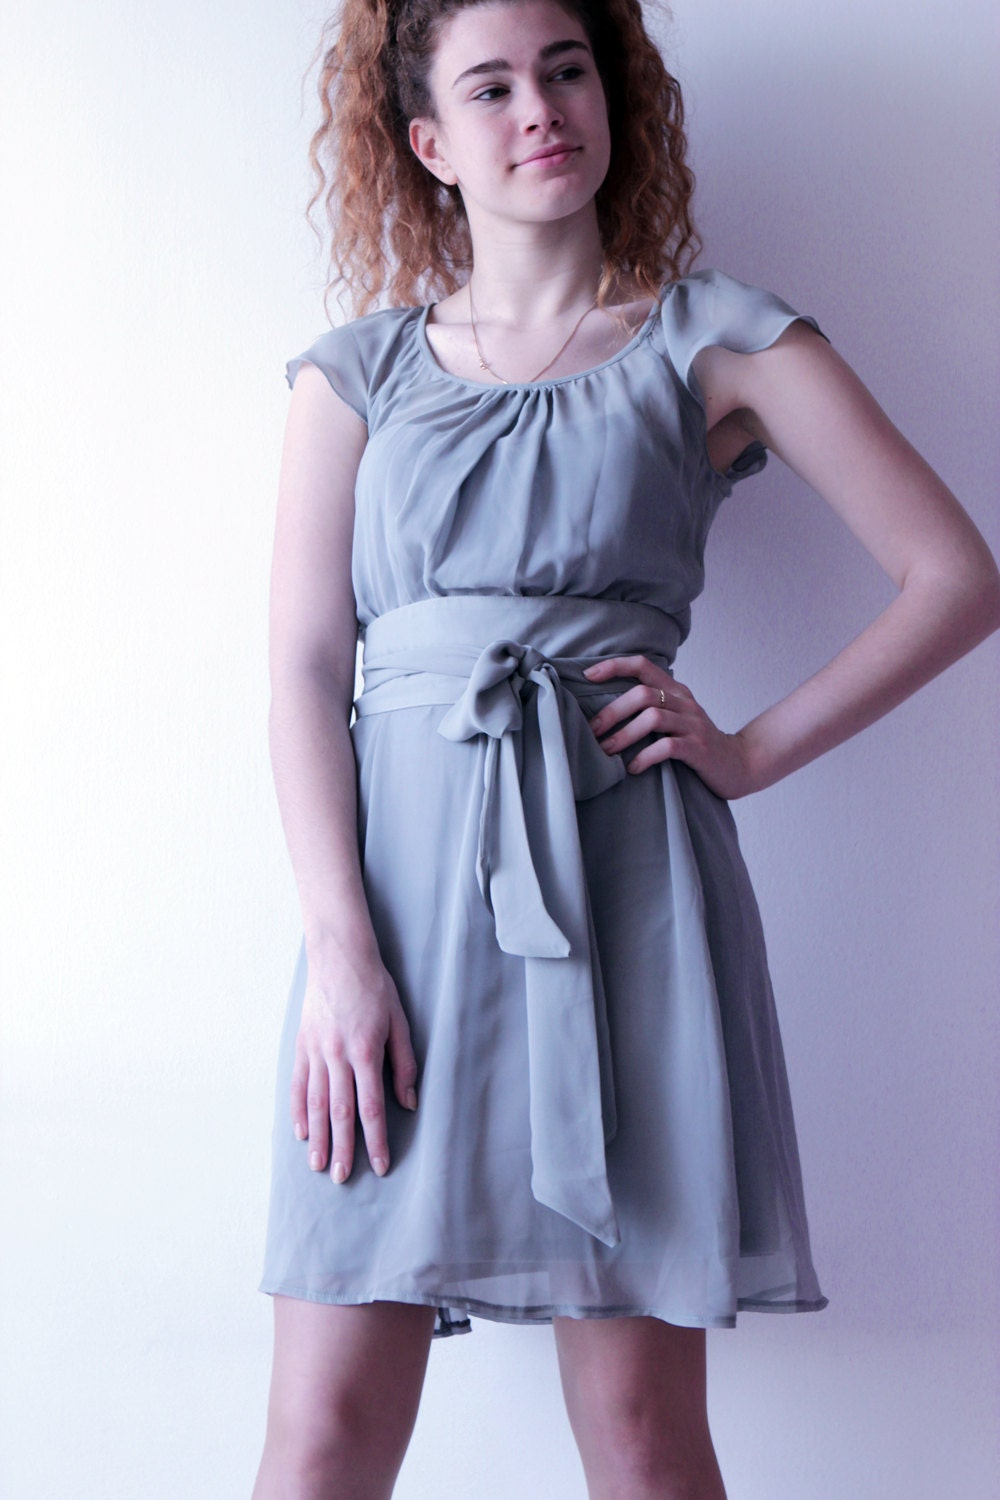 Bridesmaid Chiffon Gray Dress Graduation Dress Wedding Guest